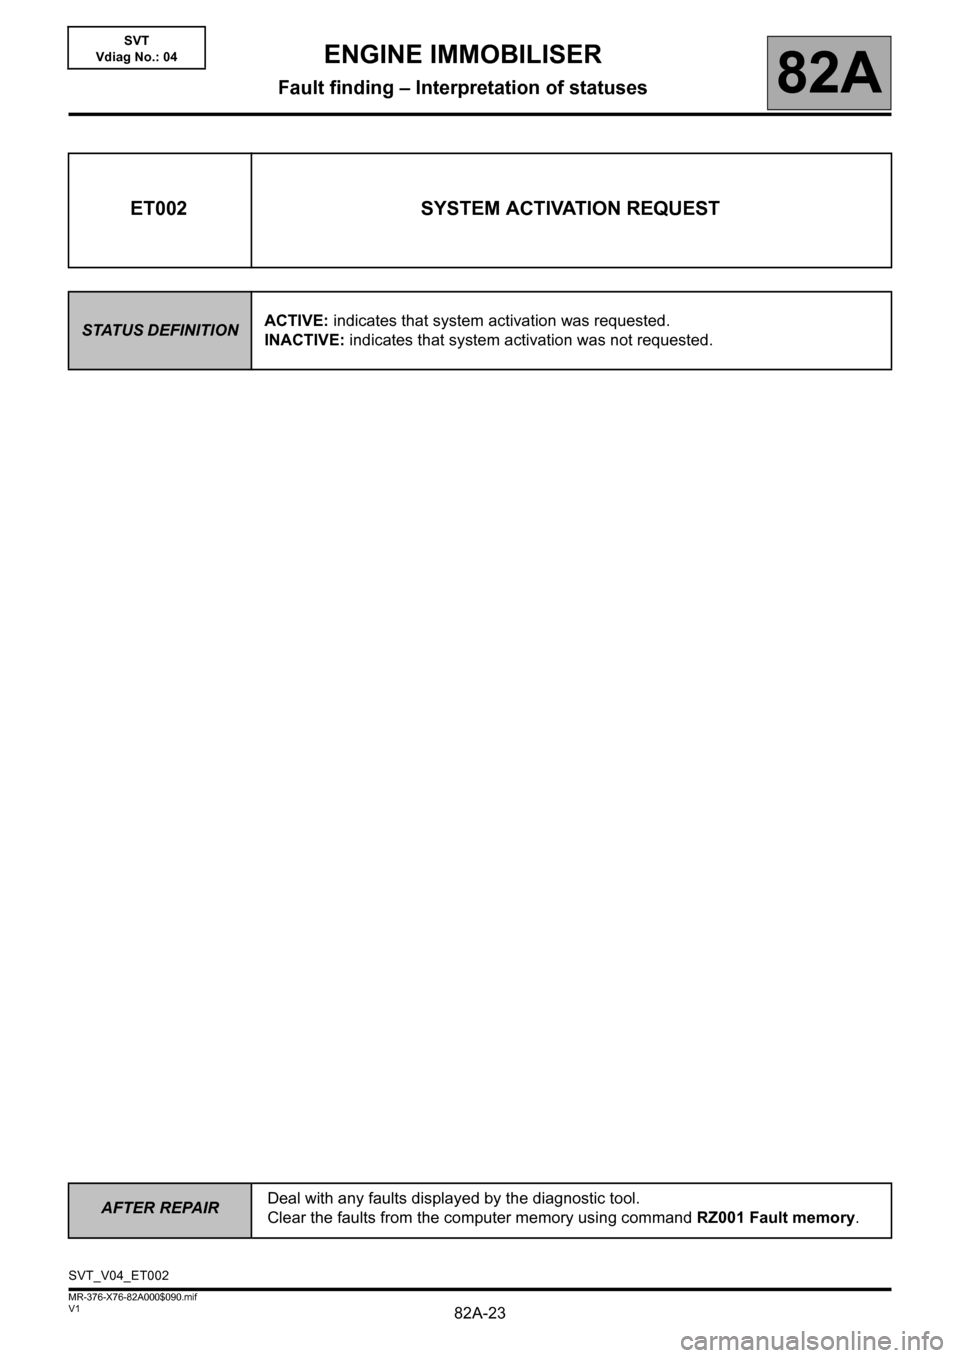 RENAULT KANGOO 2013 X61 / 2.G Engine Immobiliser Owners Manual 82A-23 AFTER REPAIRDeal with any faults displayed by the diagnostic tool. Clear the faults from the computer memory using command RZ001 Fault memory. V1 MR-376-X76-82A000$090.mif ENGINE IMMOBILISER Fa